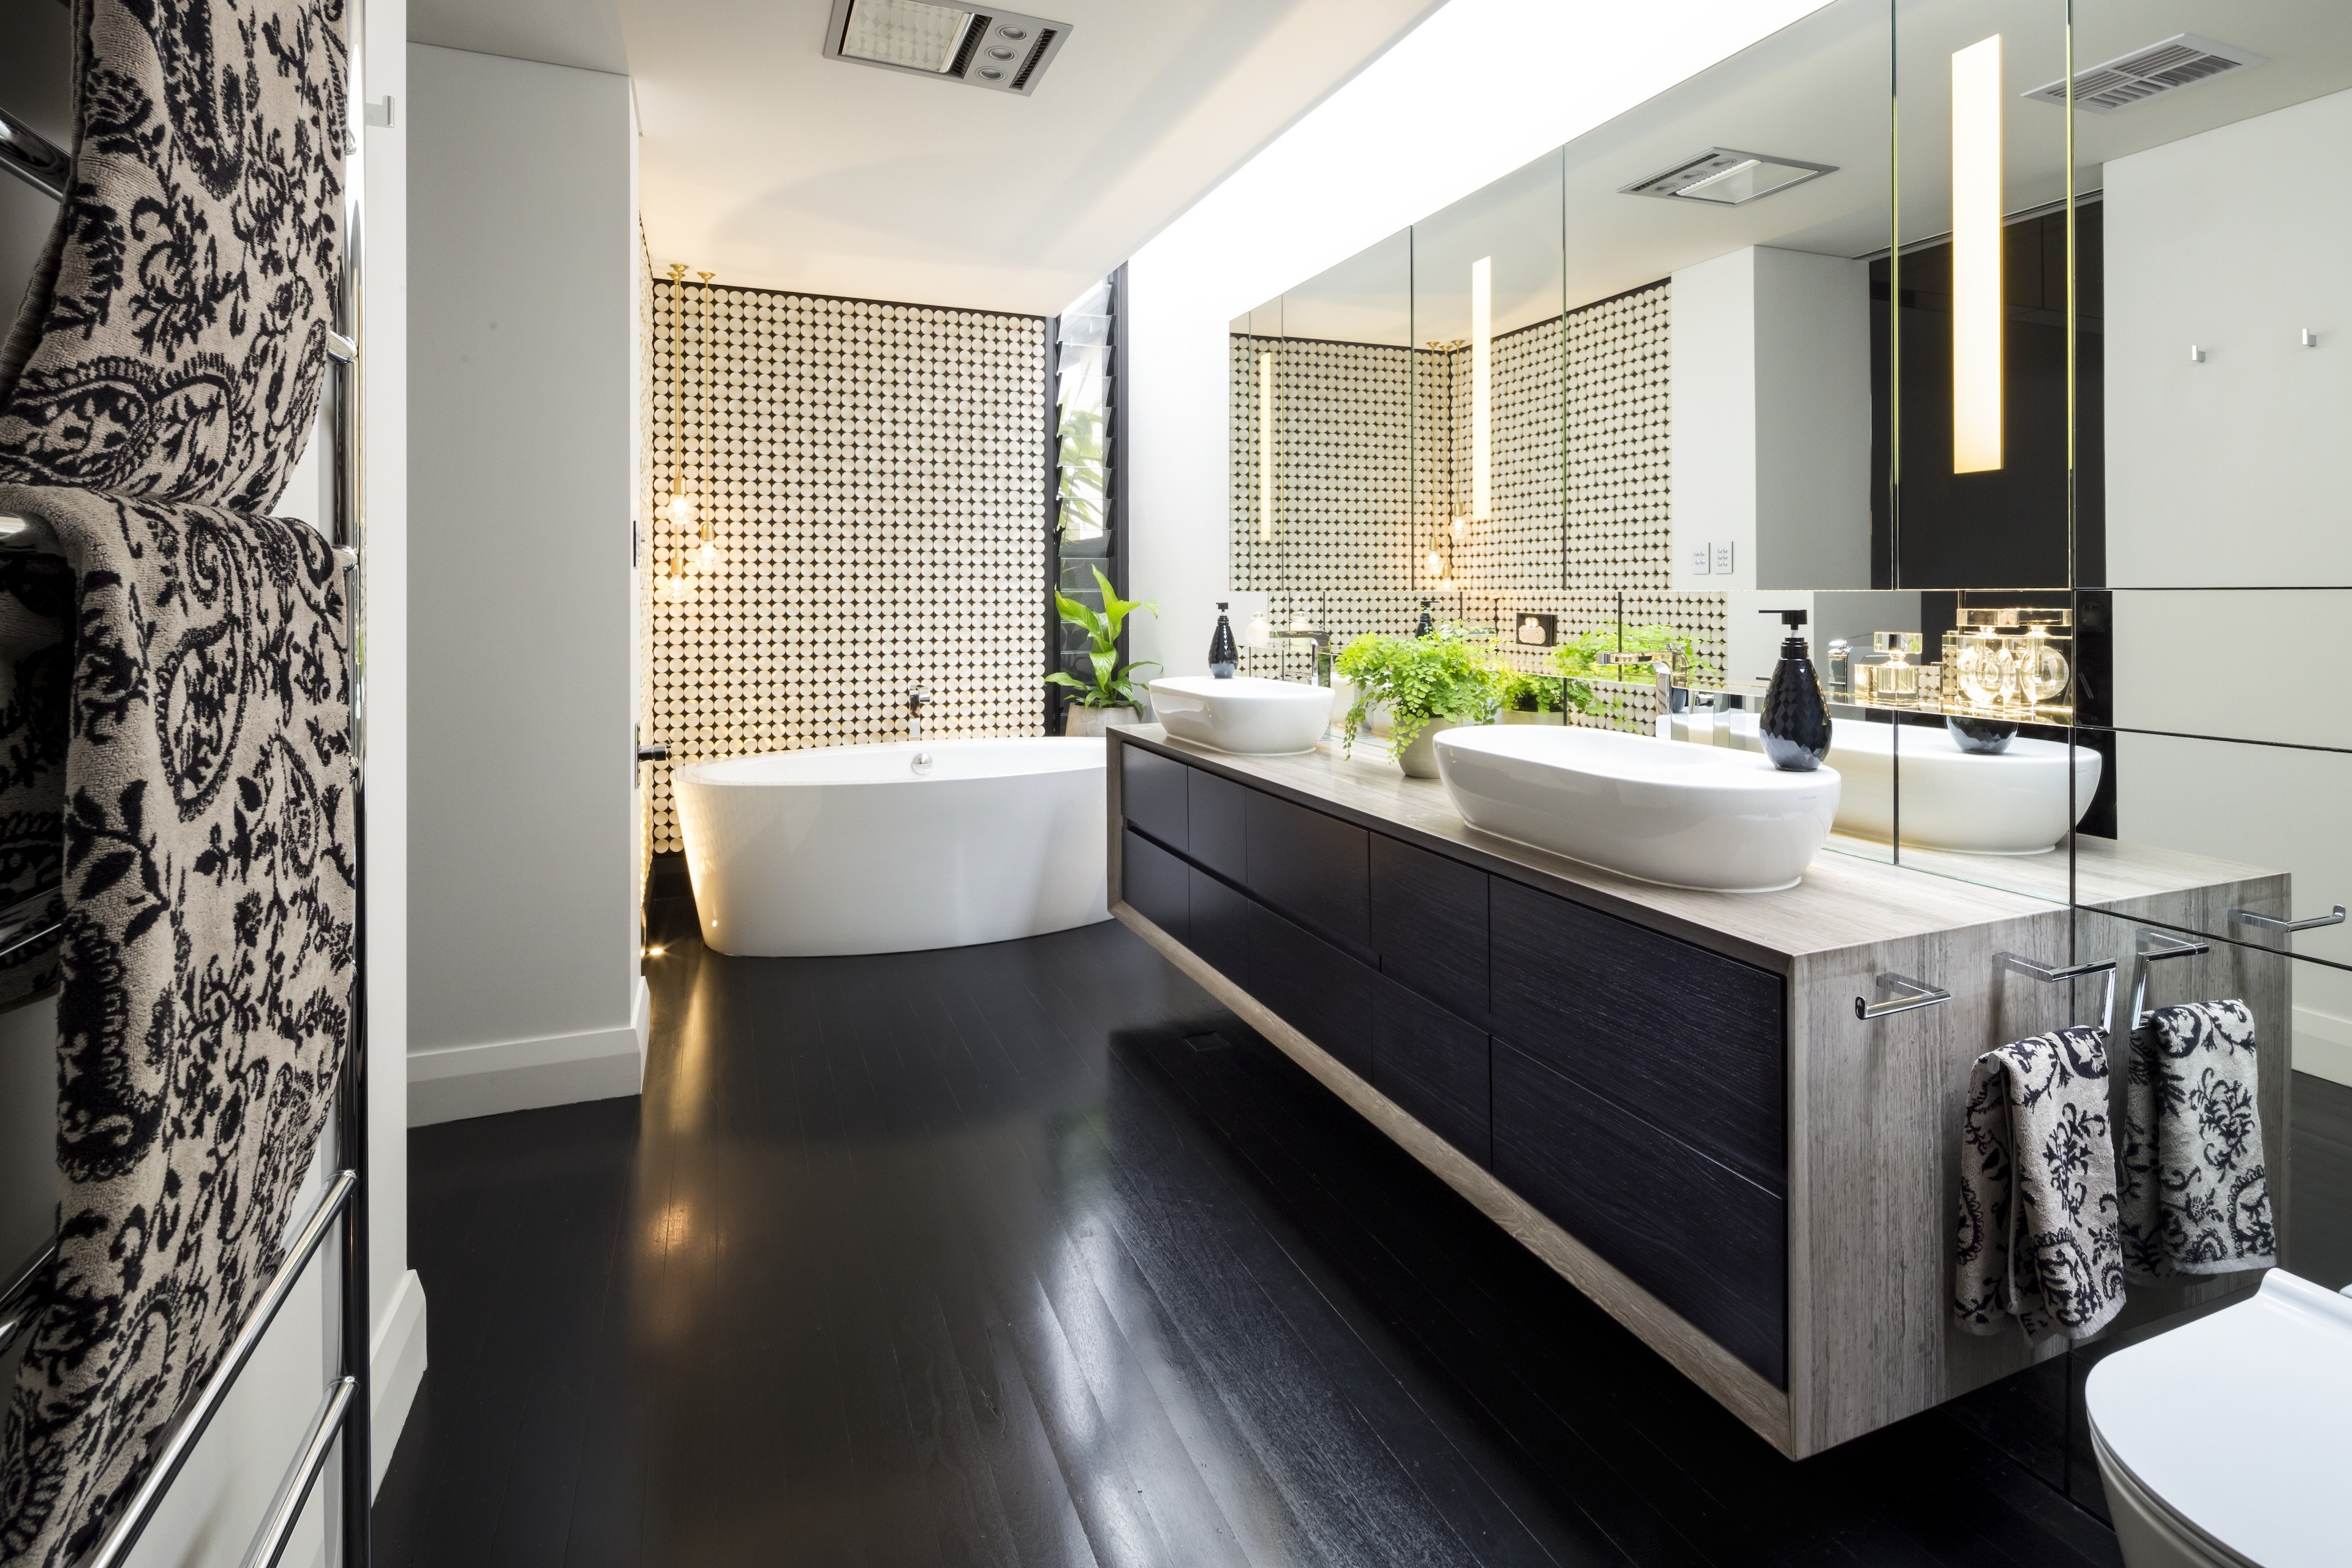 Award winning bathroom designs 2016 - Congratulations To Jason Saunders Of Arc Seven 1 Winner Of The 2016 Tida Award For Australian Designer Bathroom